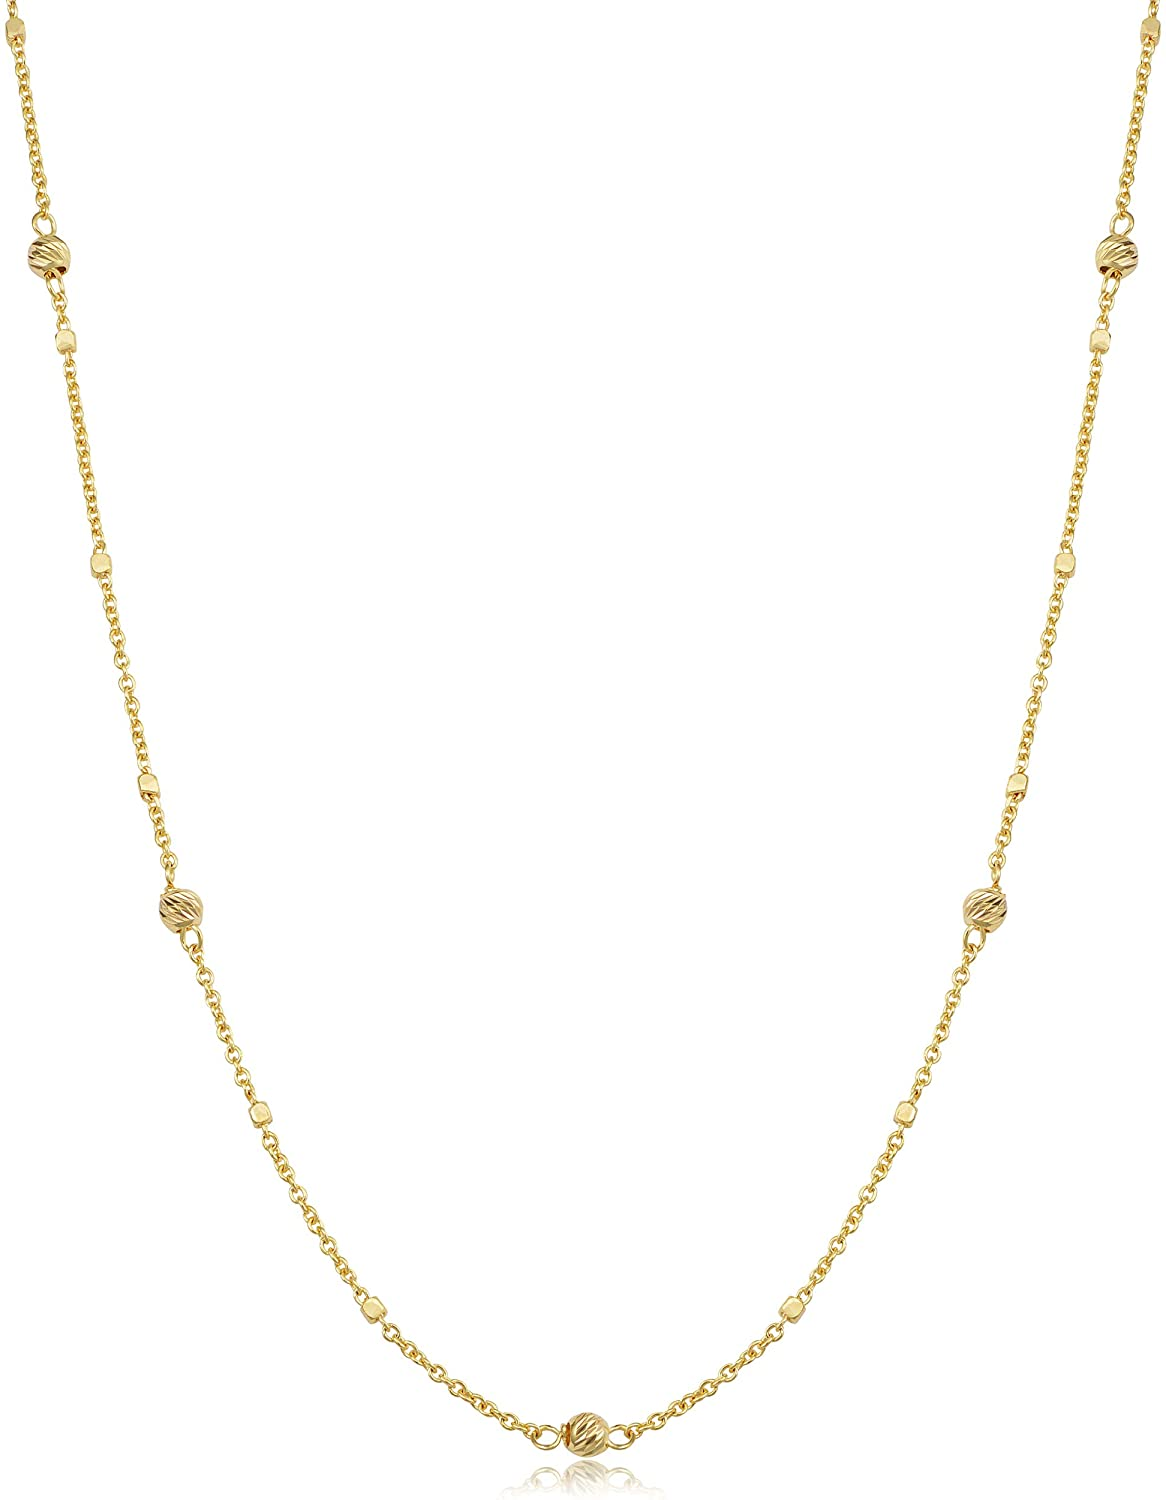 Kooljewelry 14k Yellow Gold Cube and Bead Station Necklace